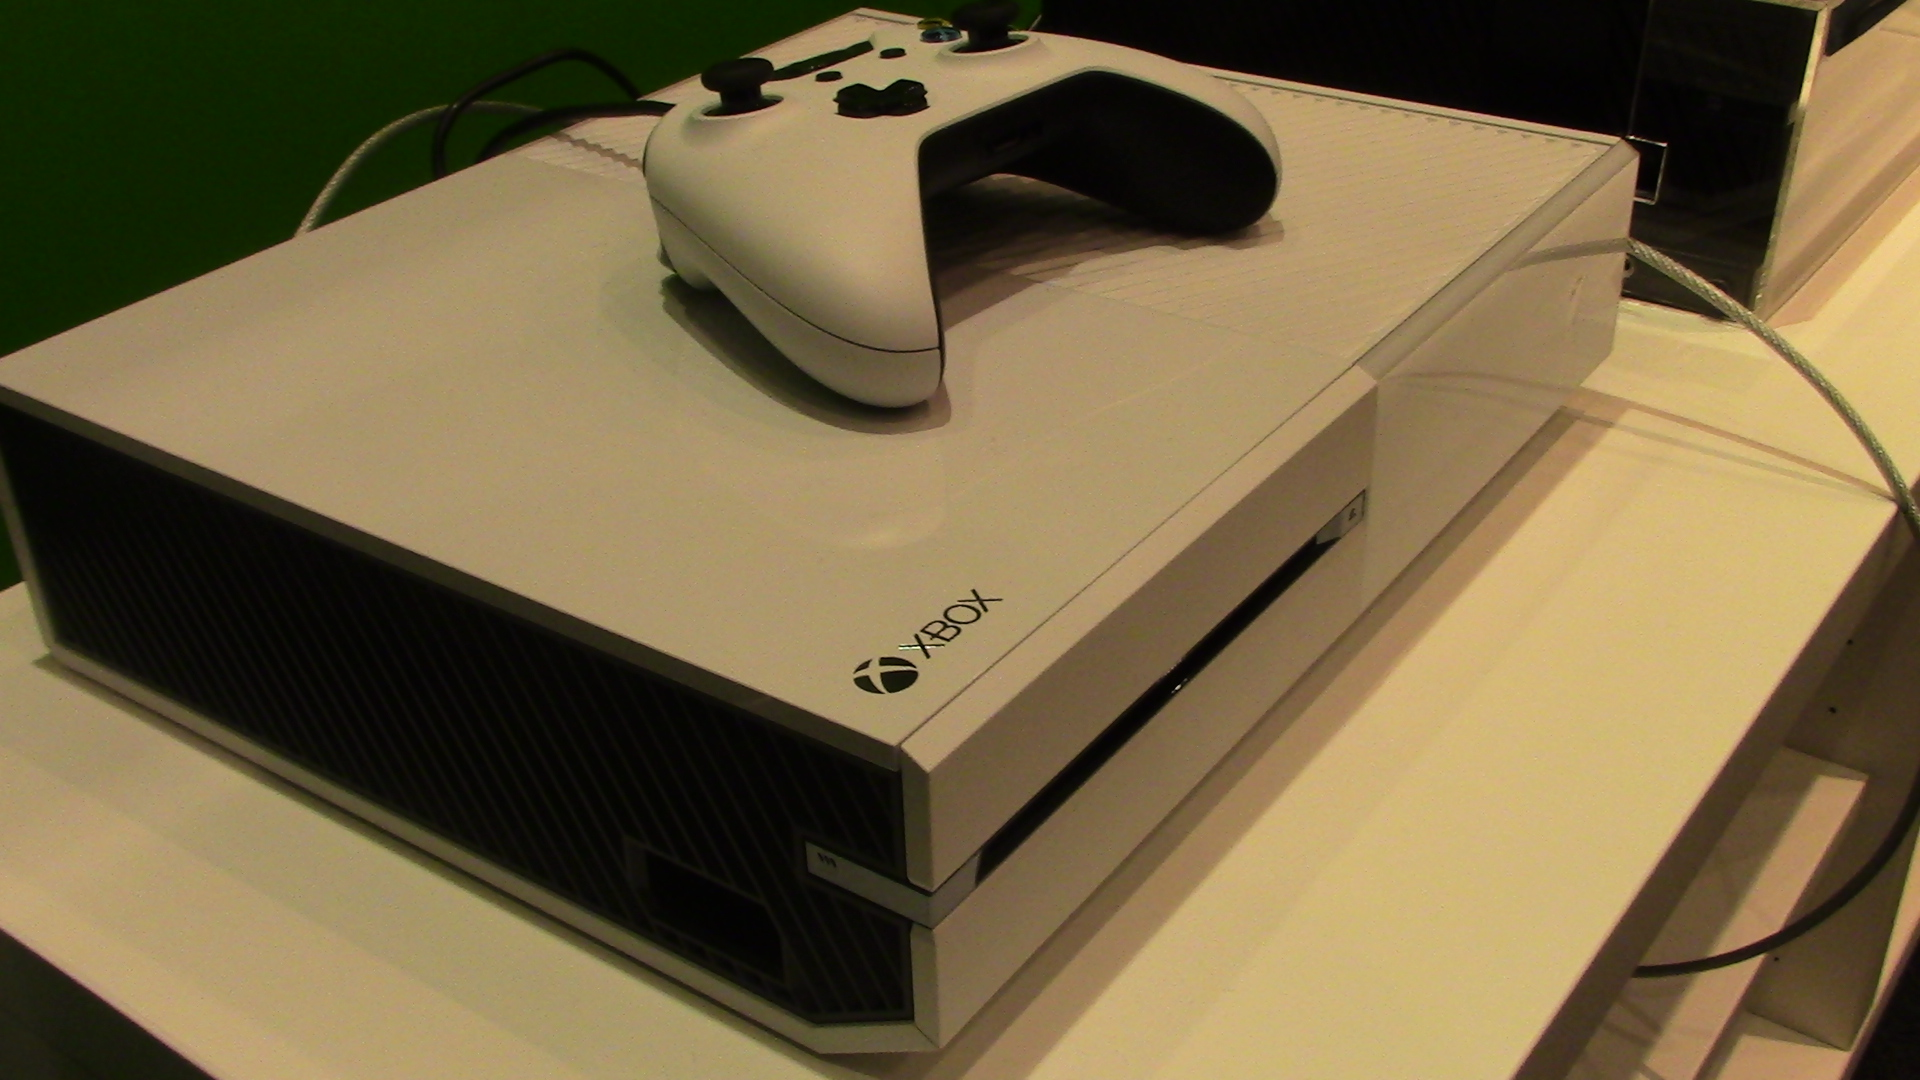 Sunset Overdrives Beautiful White Xbox One Here Are The